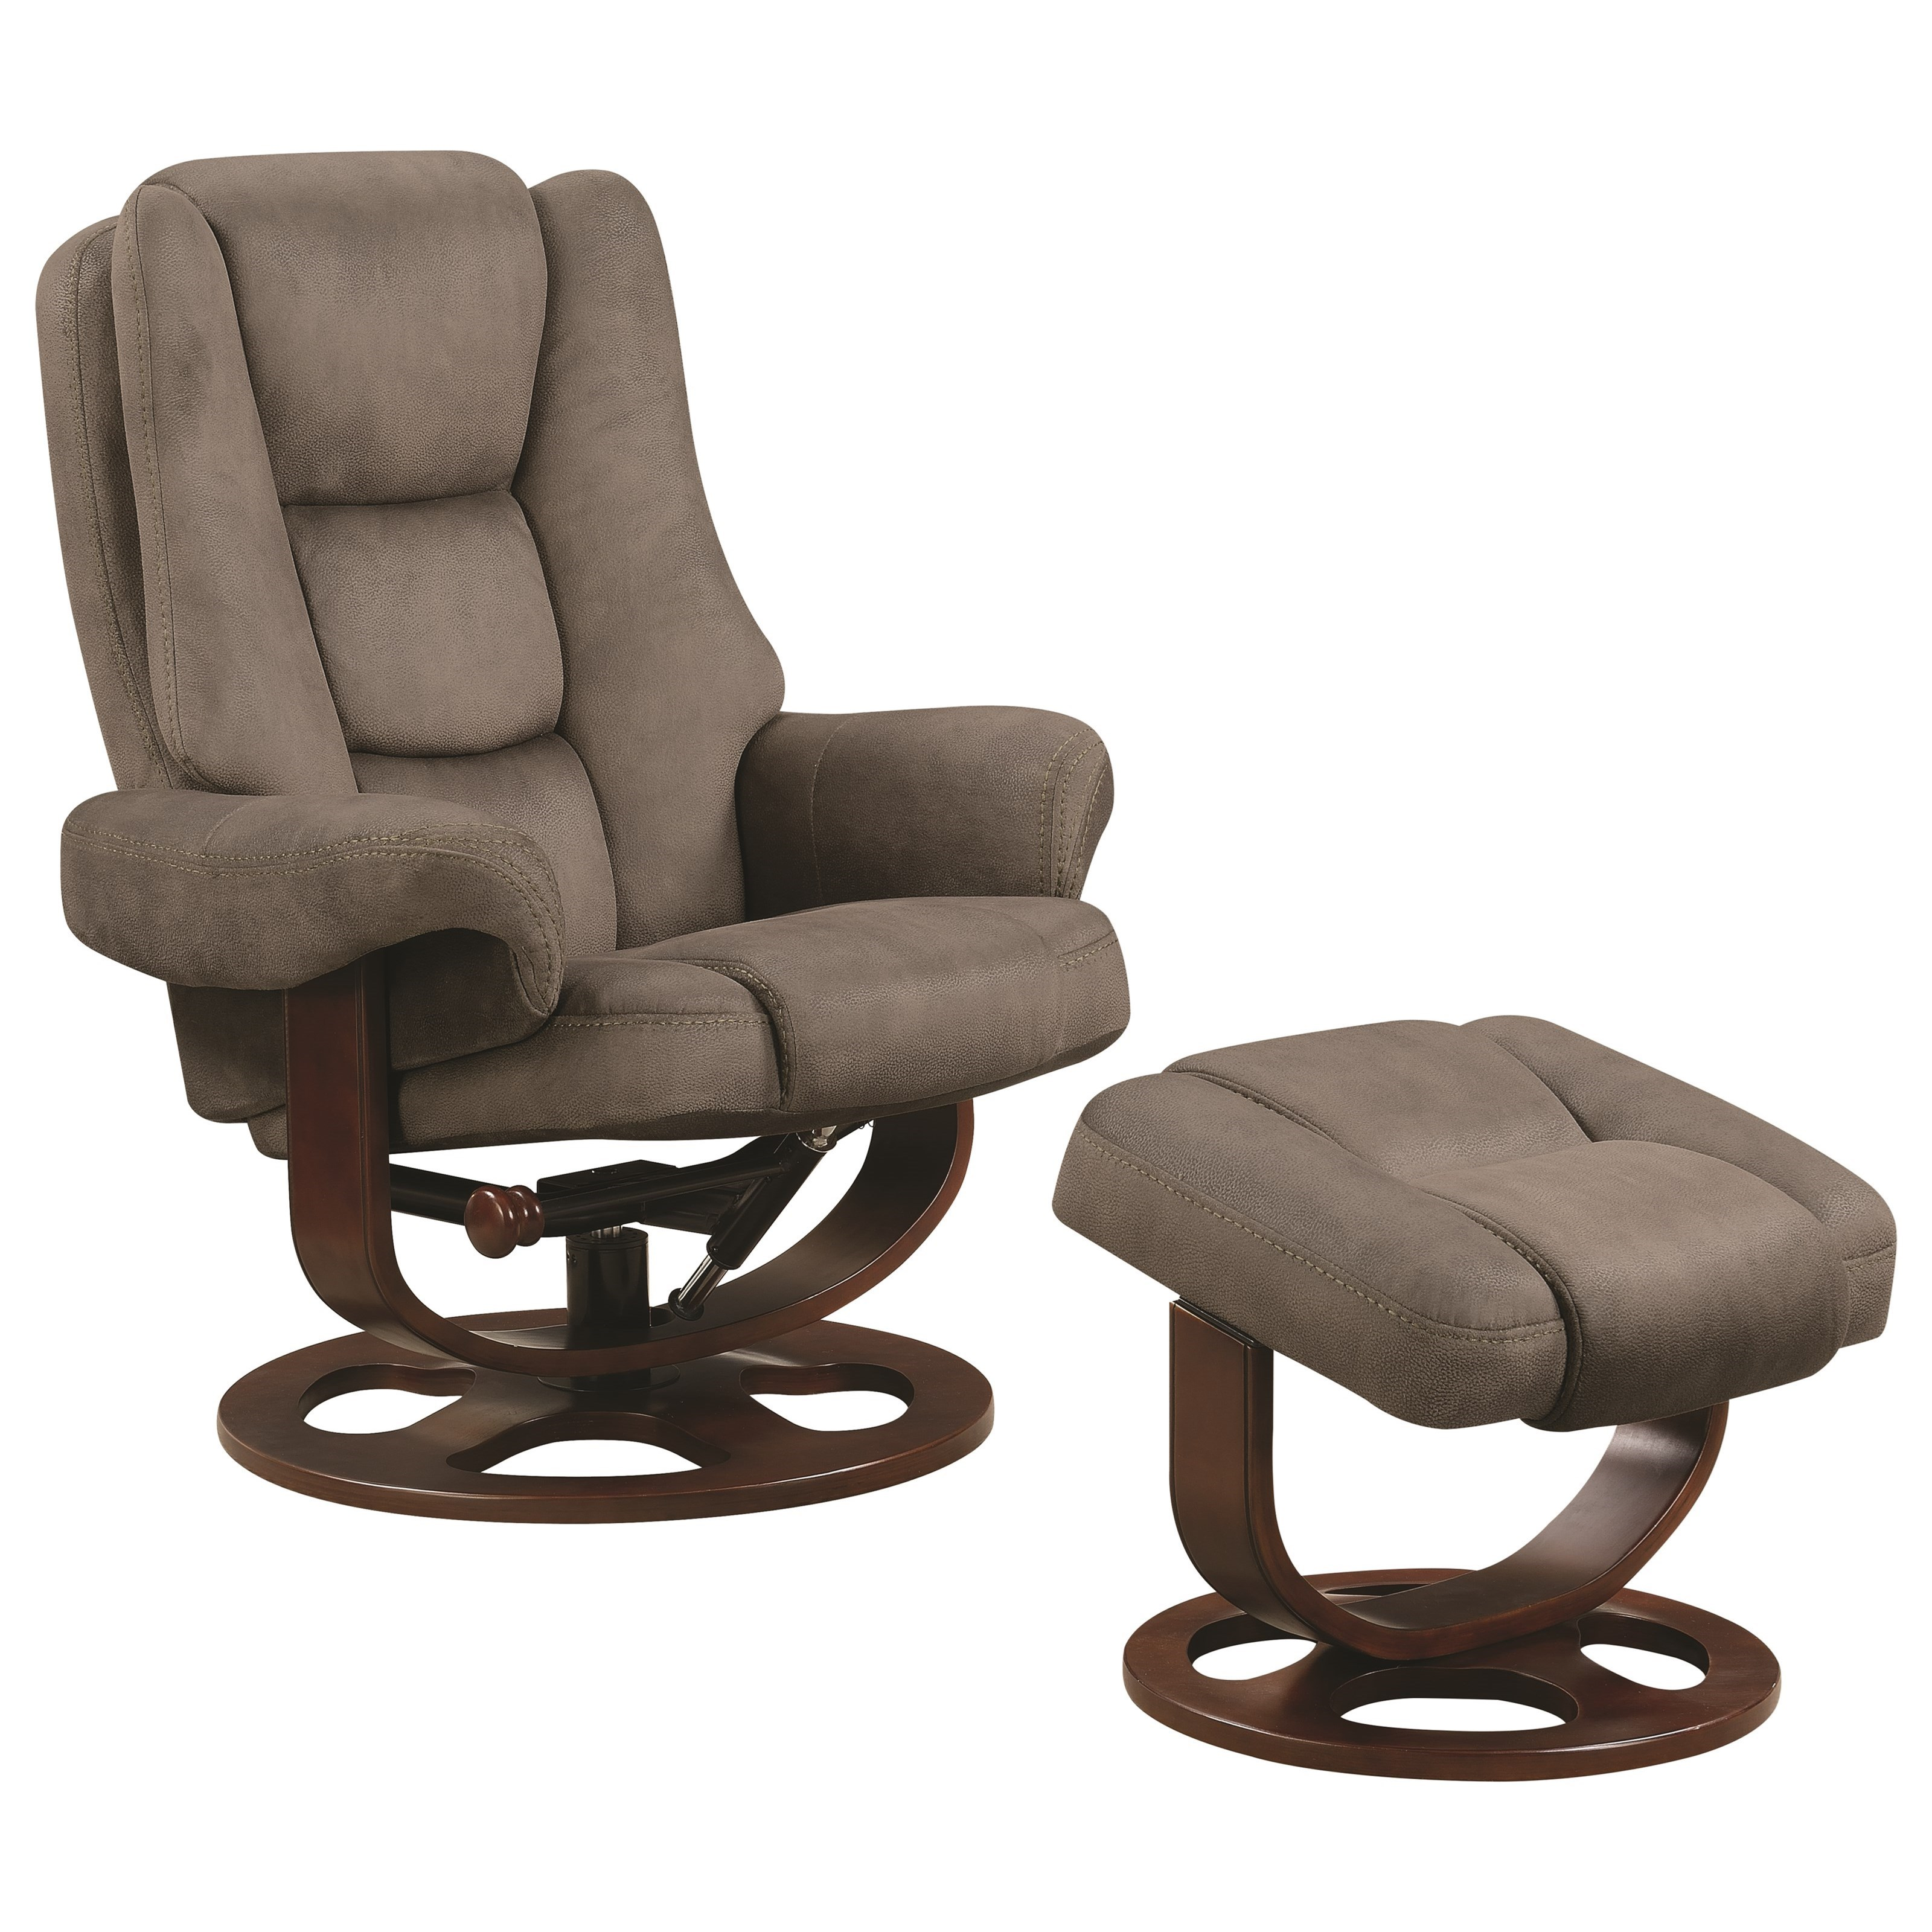 Coaster Recliners With Ottomans Chair With Ottoman   Item Number: 600096